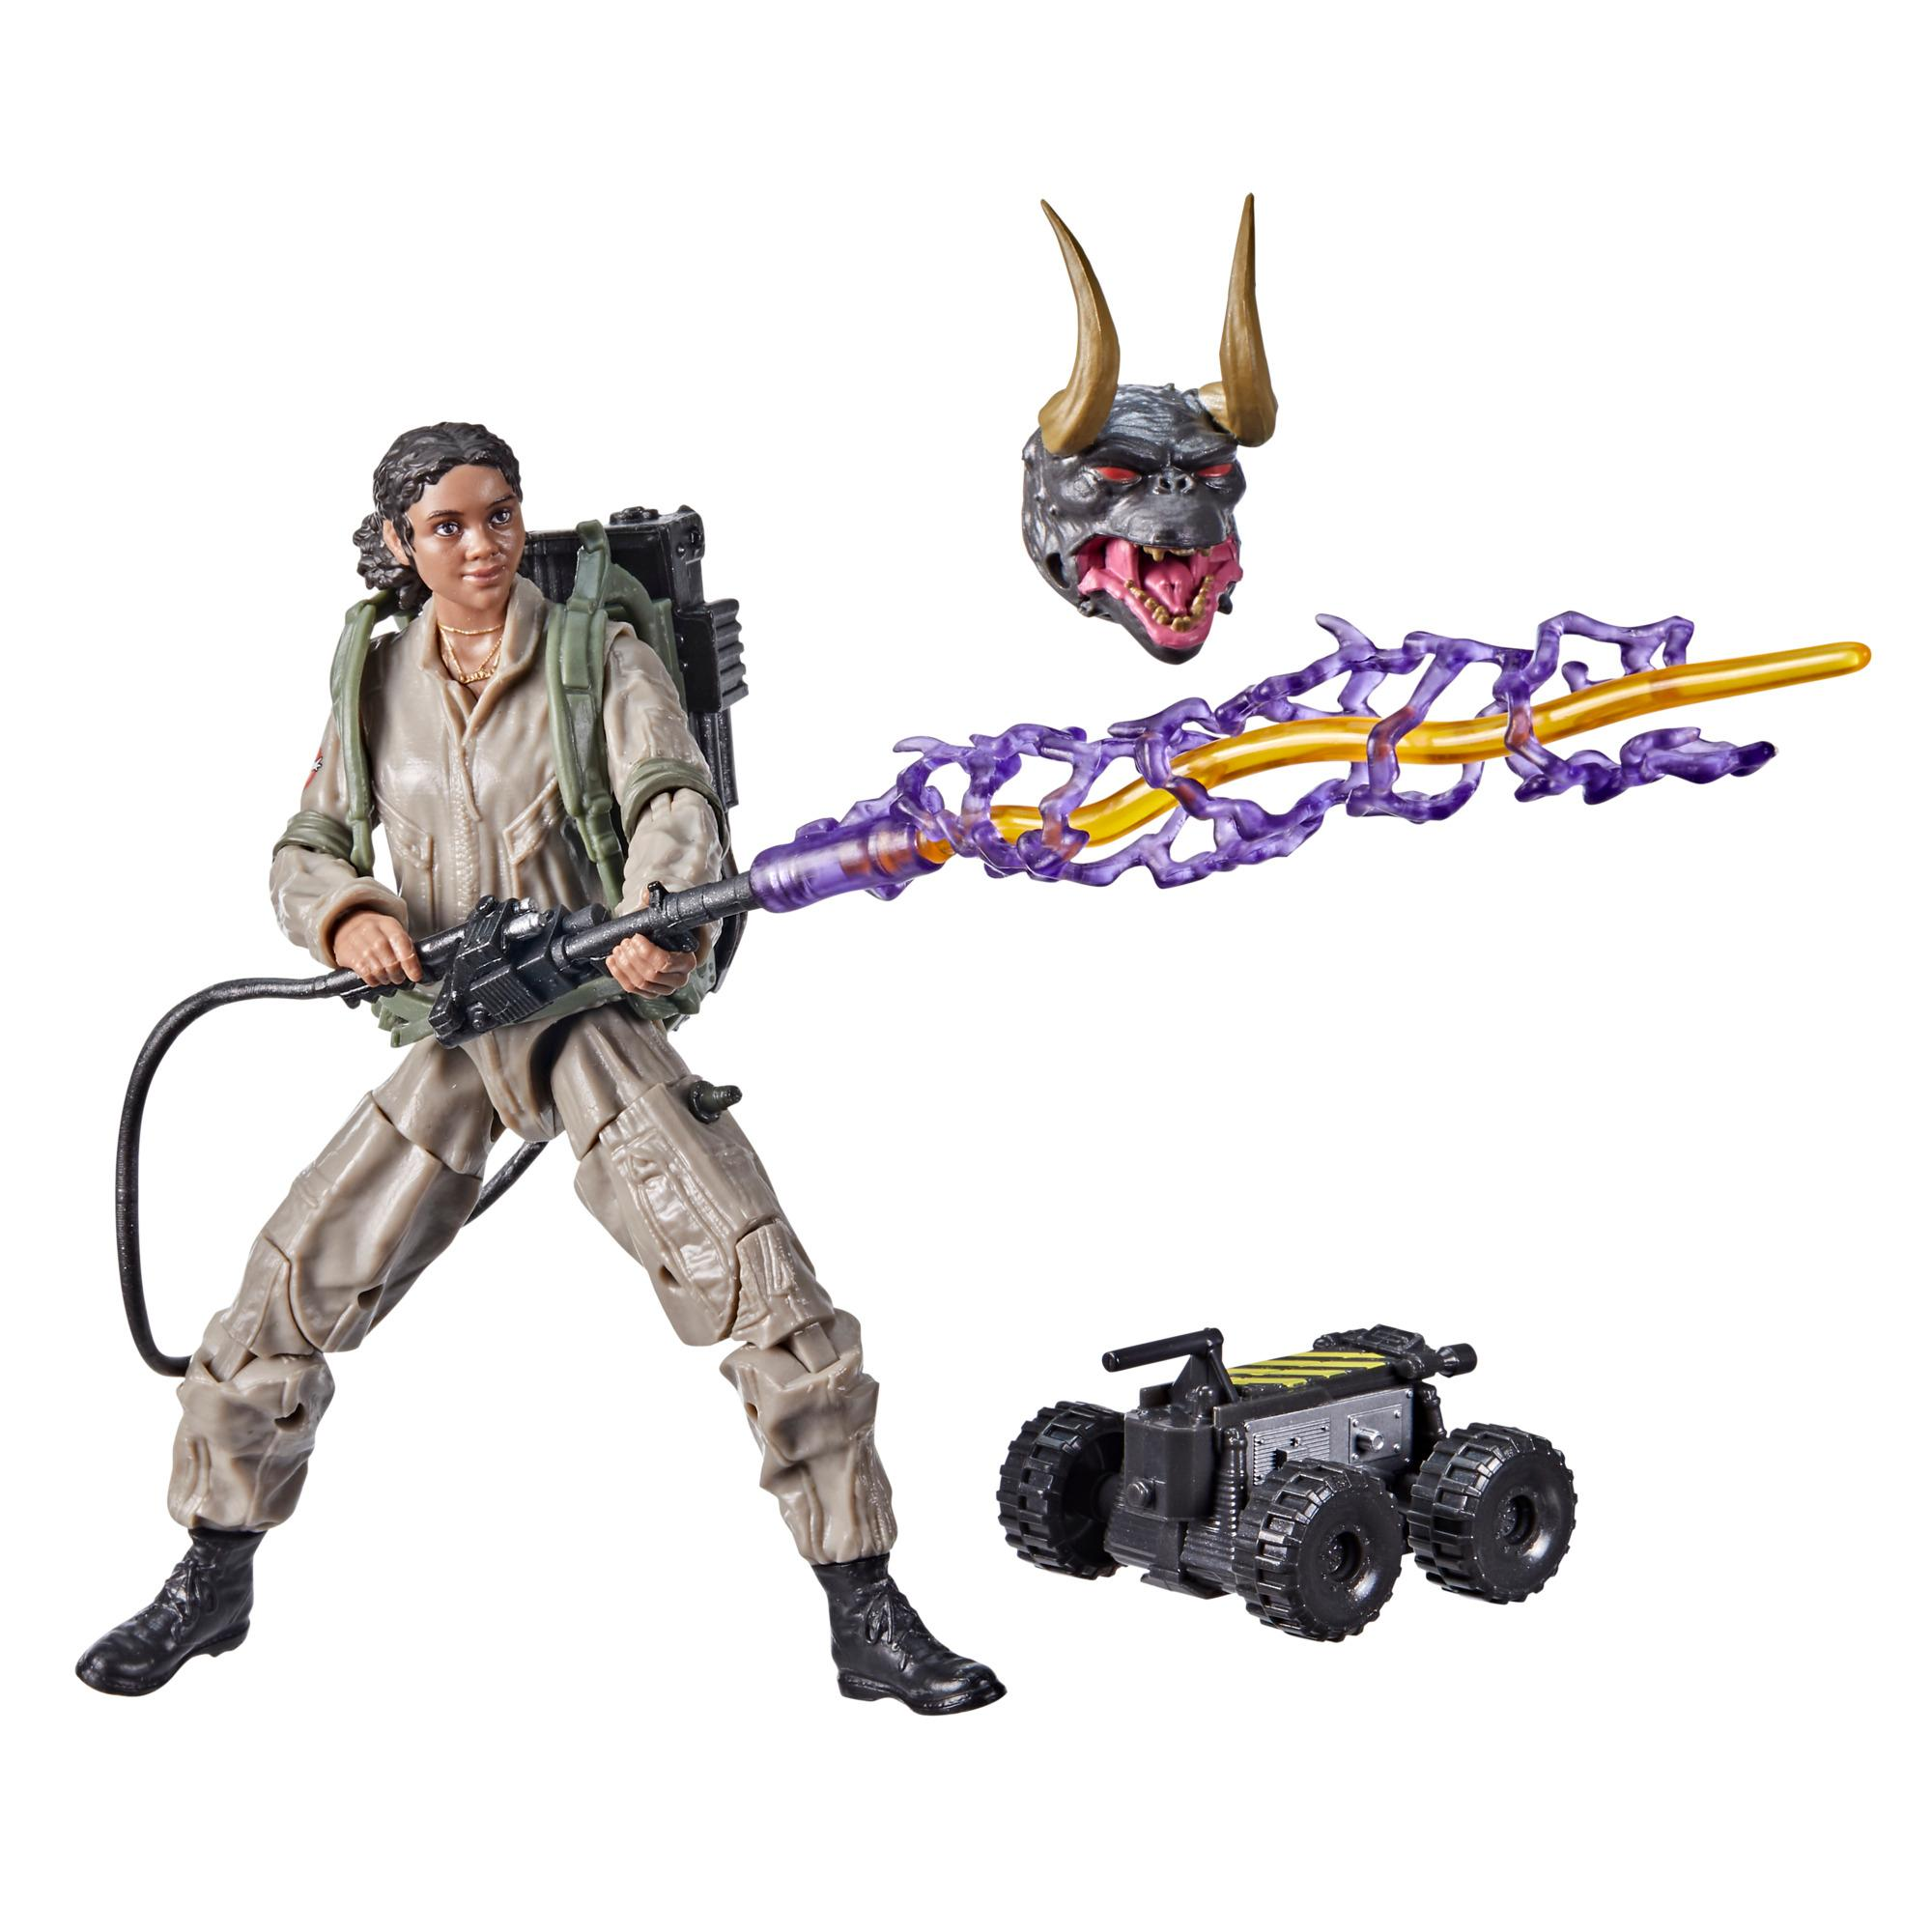 Ghostbusters Plasma Series Lucky Toy 6-Inch-Scale Collectible Ghostbusters: Afterlife Action Figure, Kids Ages 4 and Up